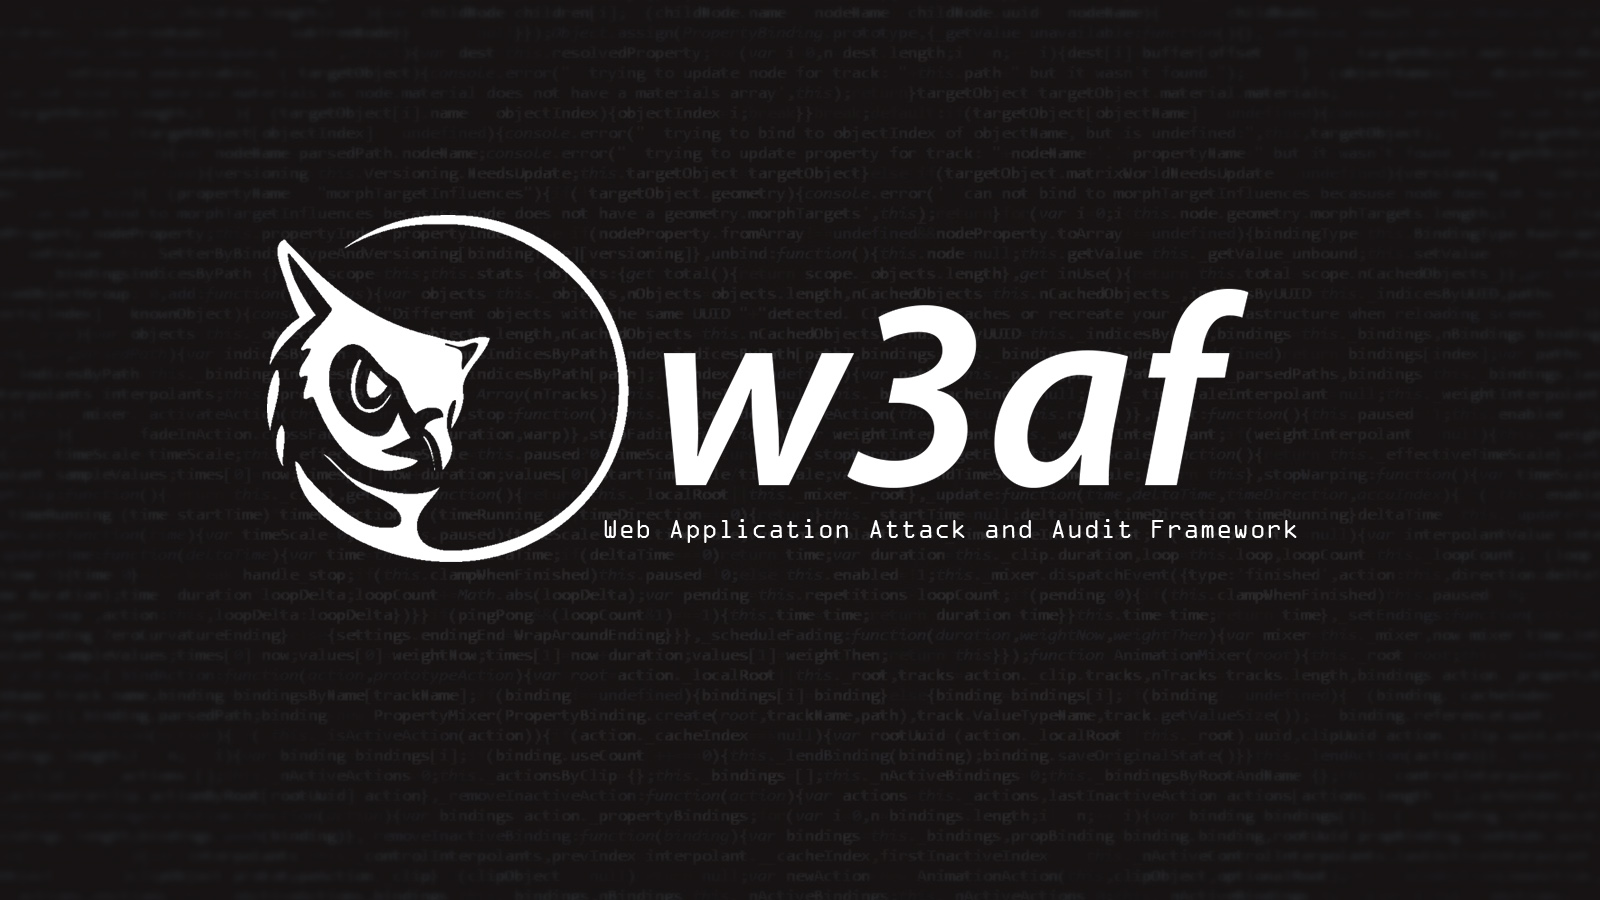 w3af - Web Application Attack and Audit Framework